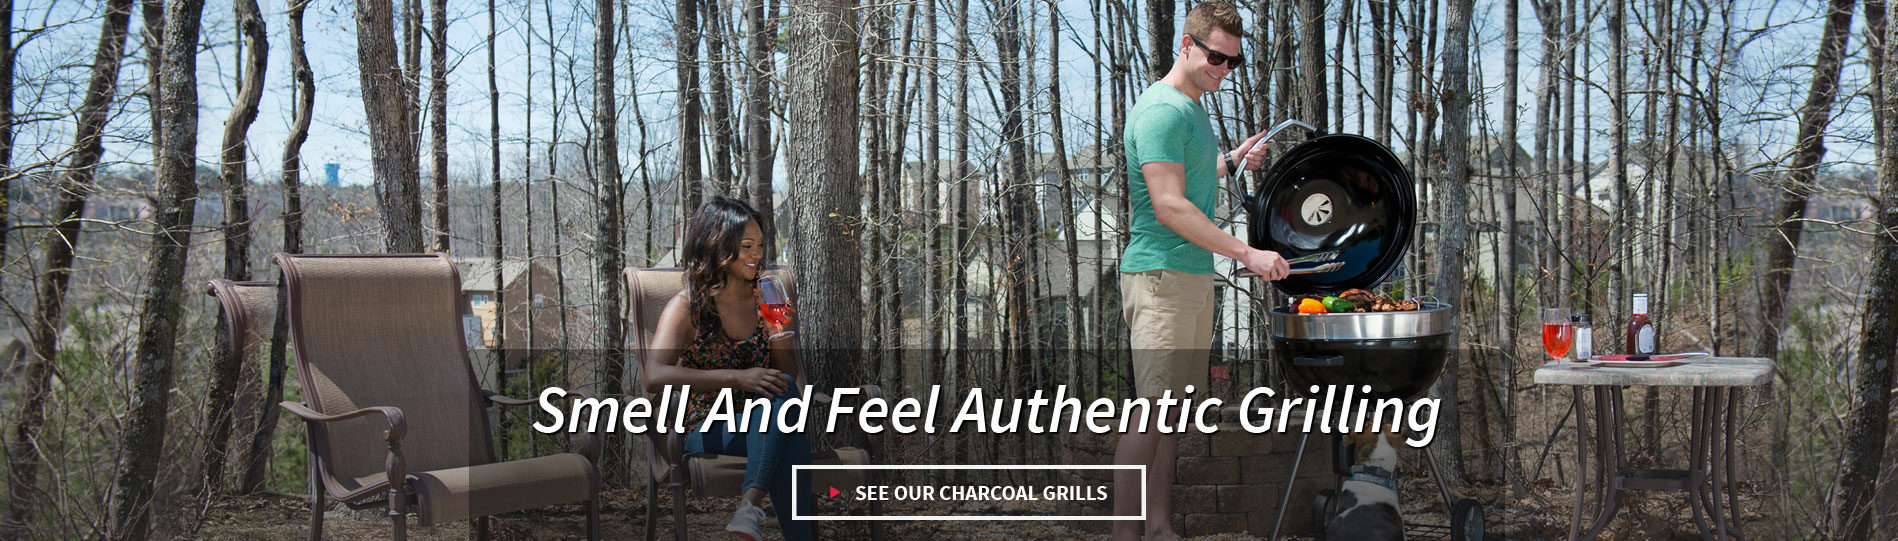 Smell and feel authentic grilling